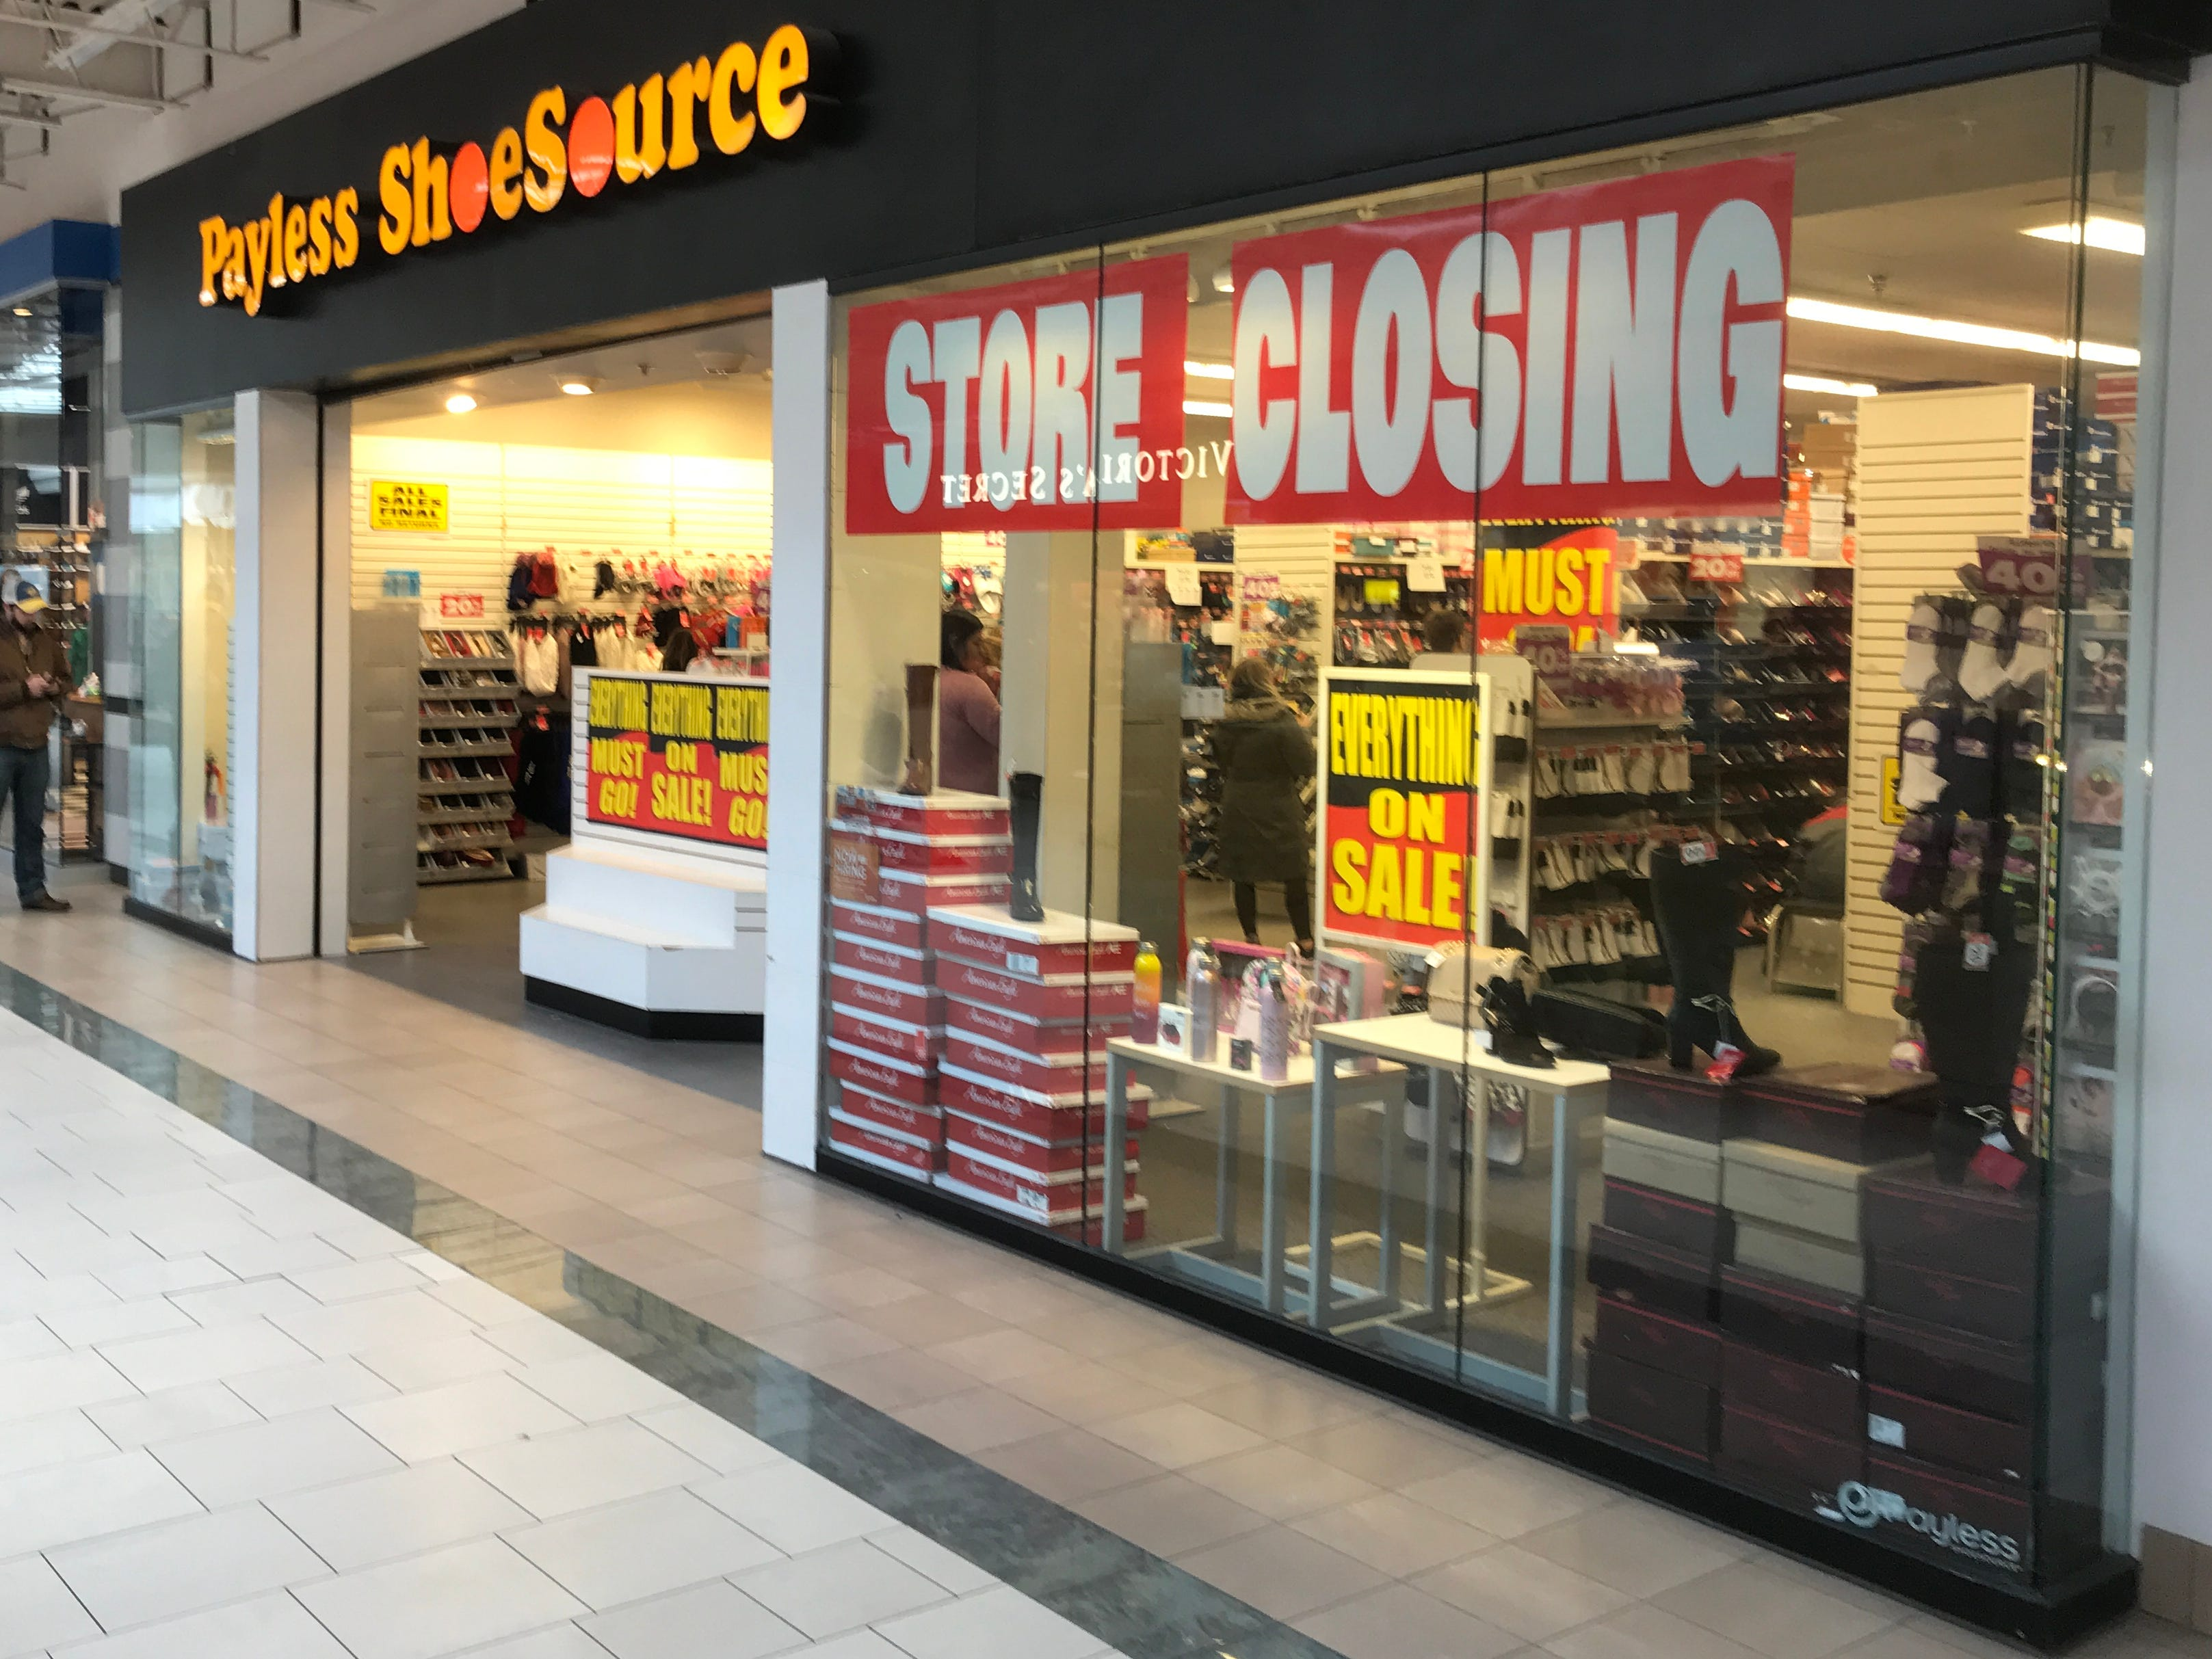 Payless ShoeSource  announced Feb. 15 that it would liquidate its inventory and close all of its 2,100 stores. The stores are expected to stay open at least through March.